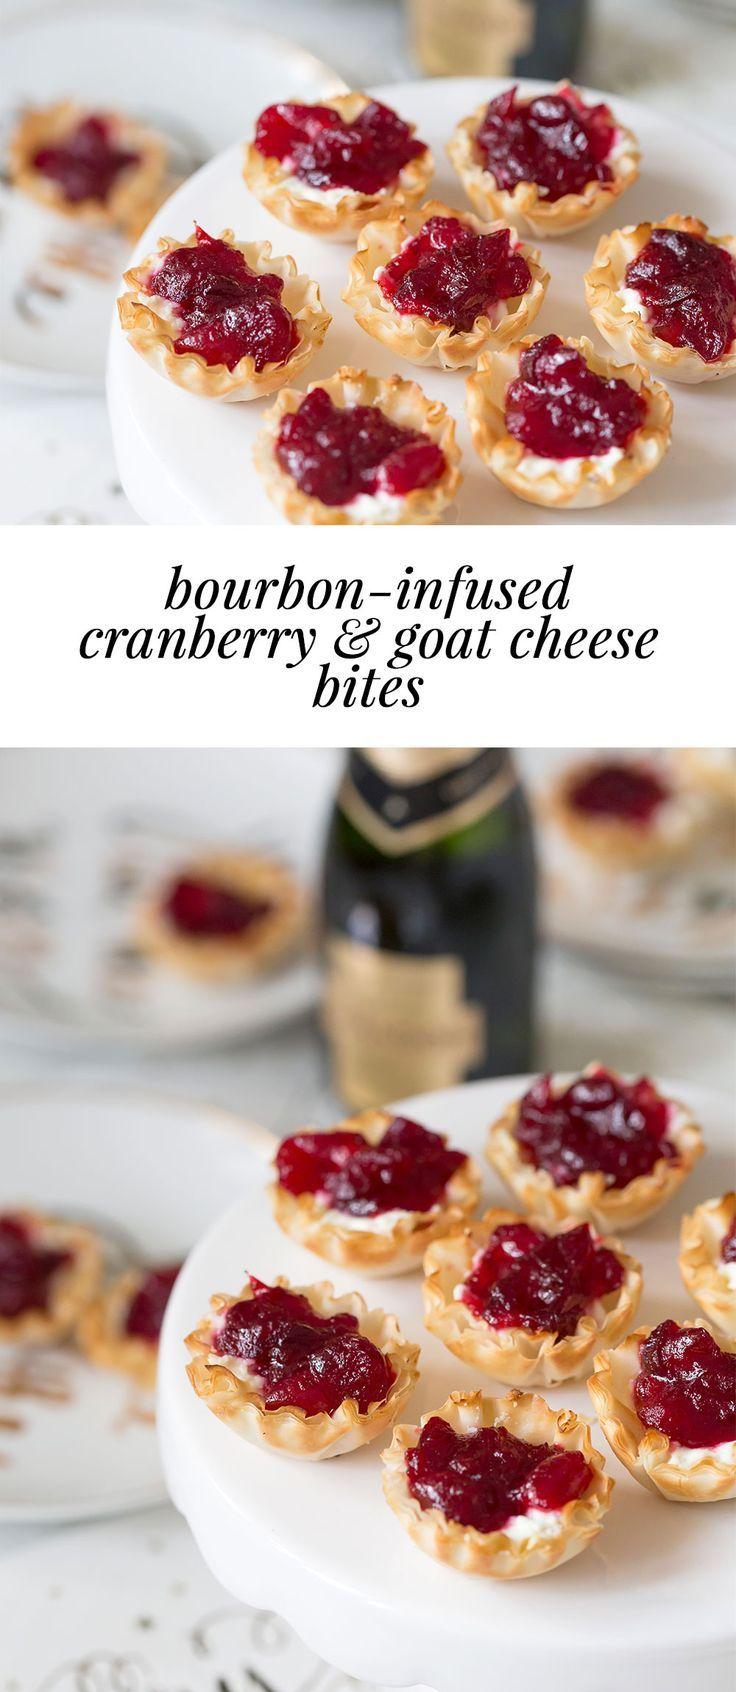 Learn how to make bourbon-infused cranberry and goat cheese bites to add to your party spread! You'll find they're the first appetizer to go!